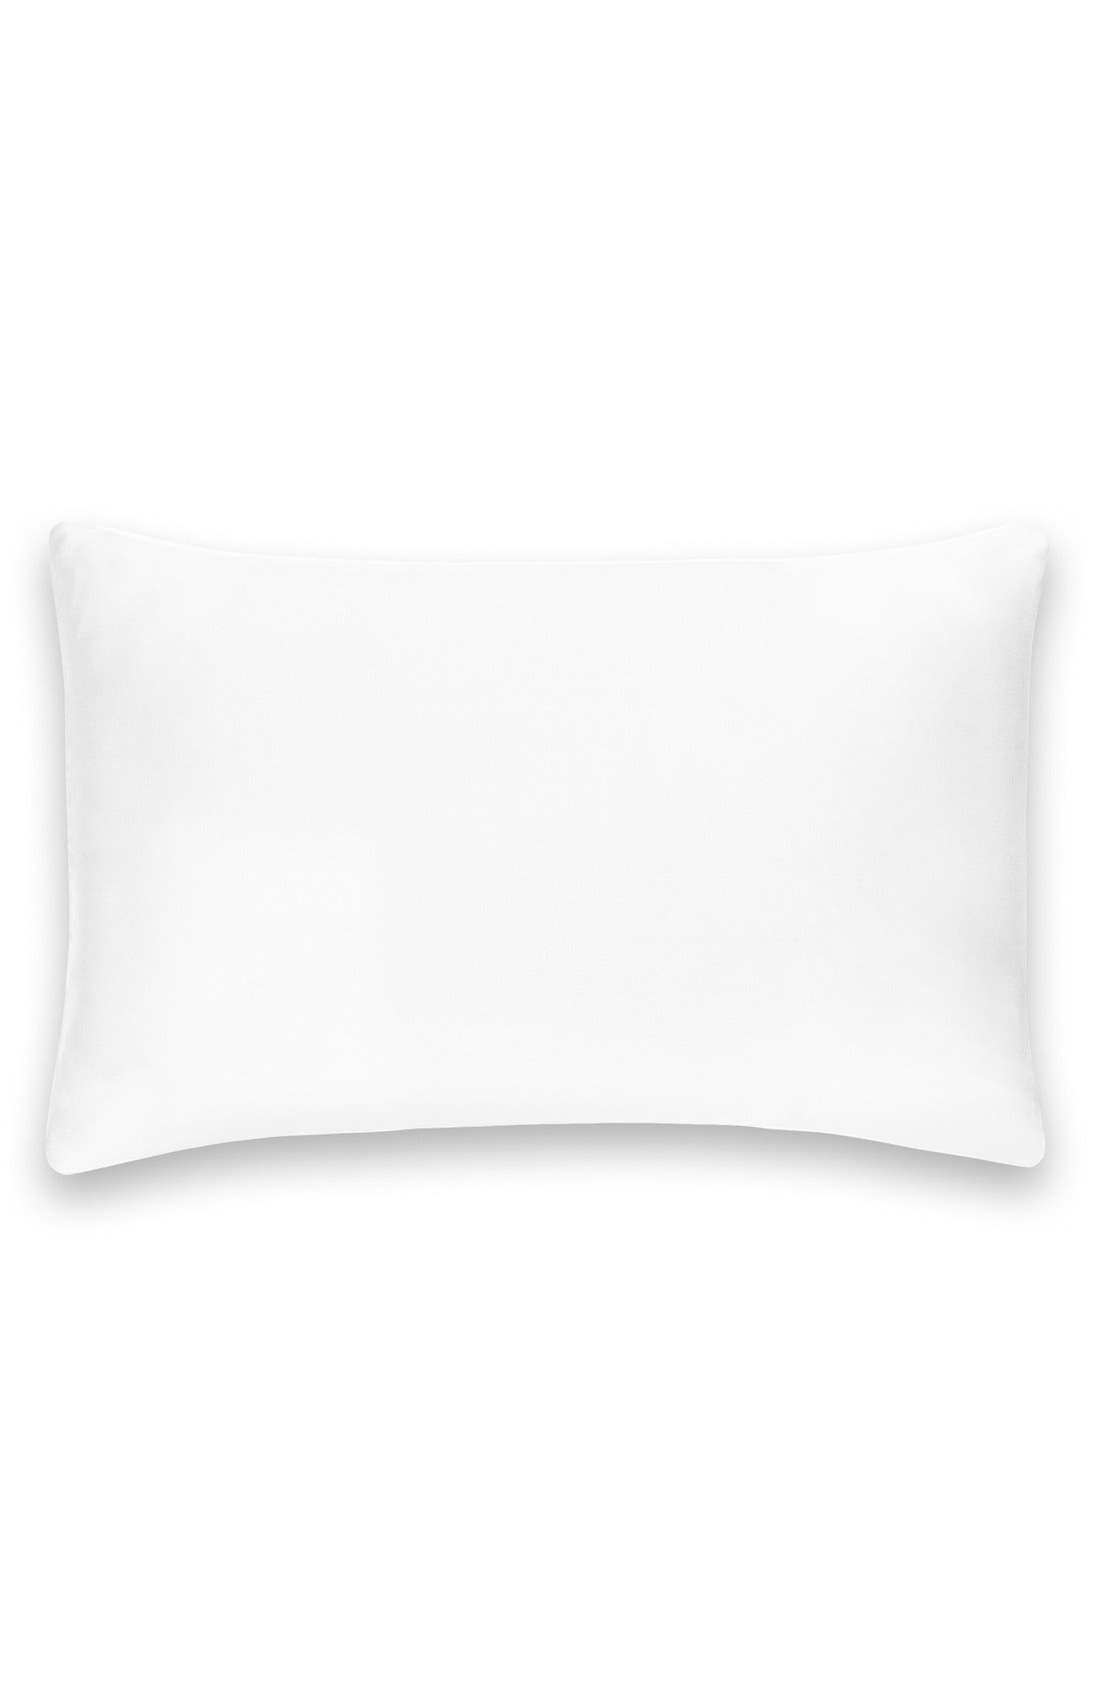 ME,                             Glow Beauty Boosting Pillowcase,                             Main thumbnail 1, color,                             000